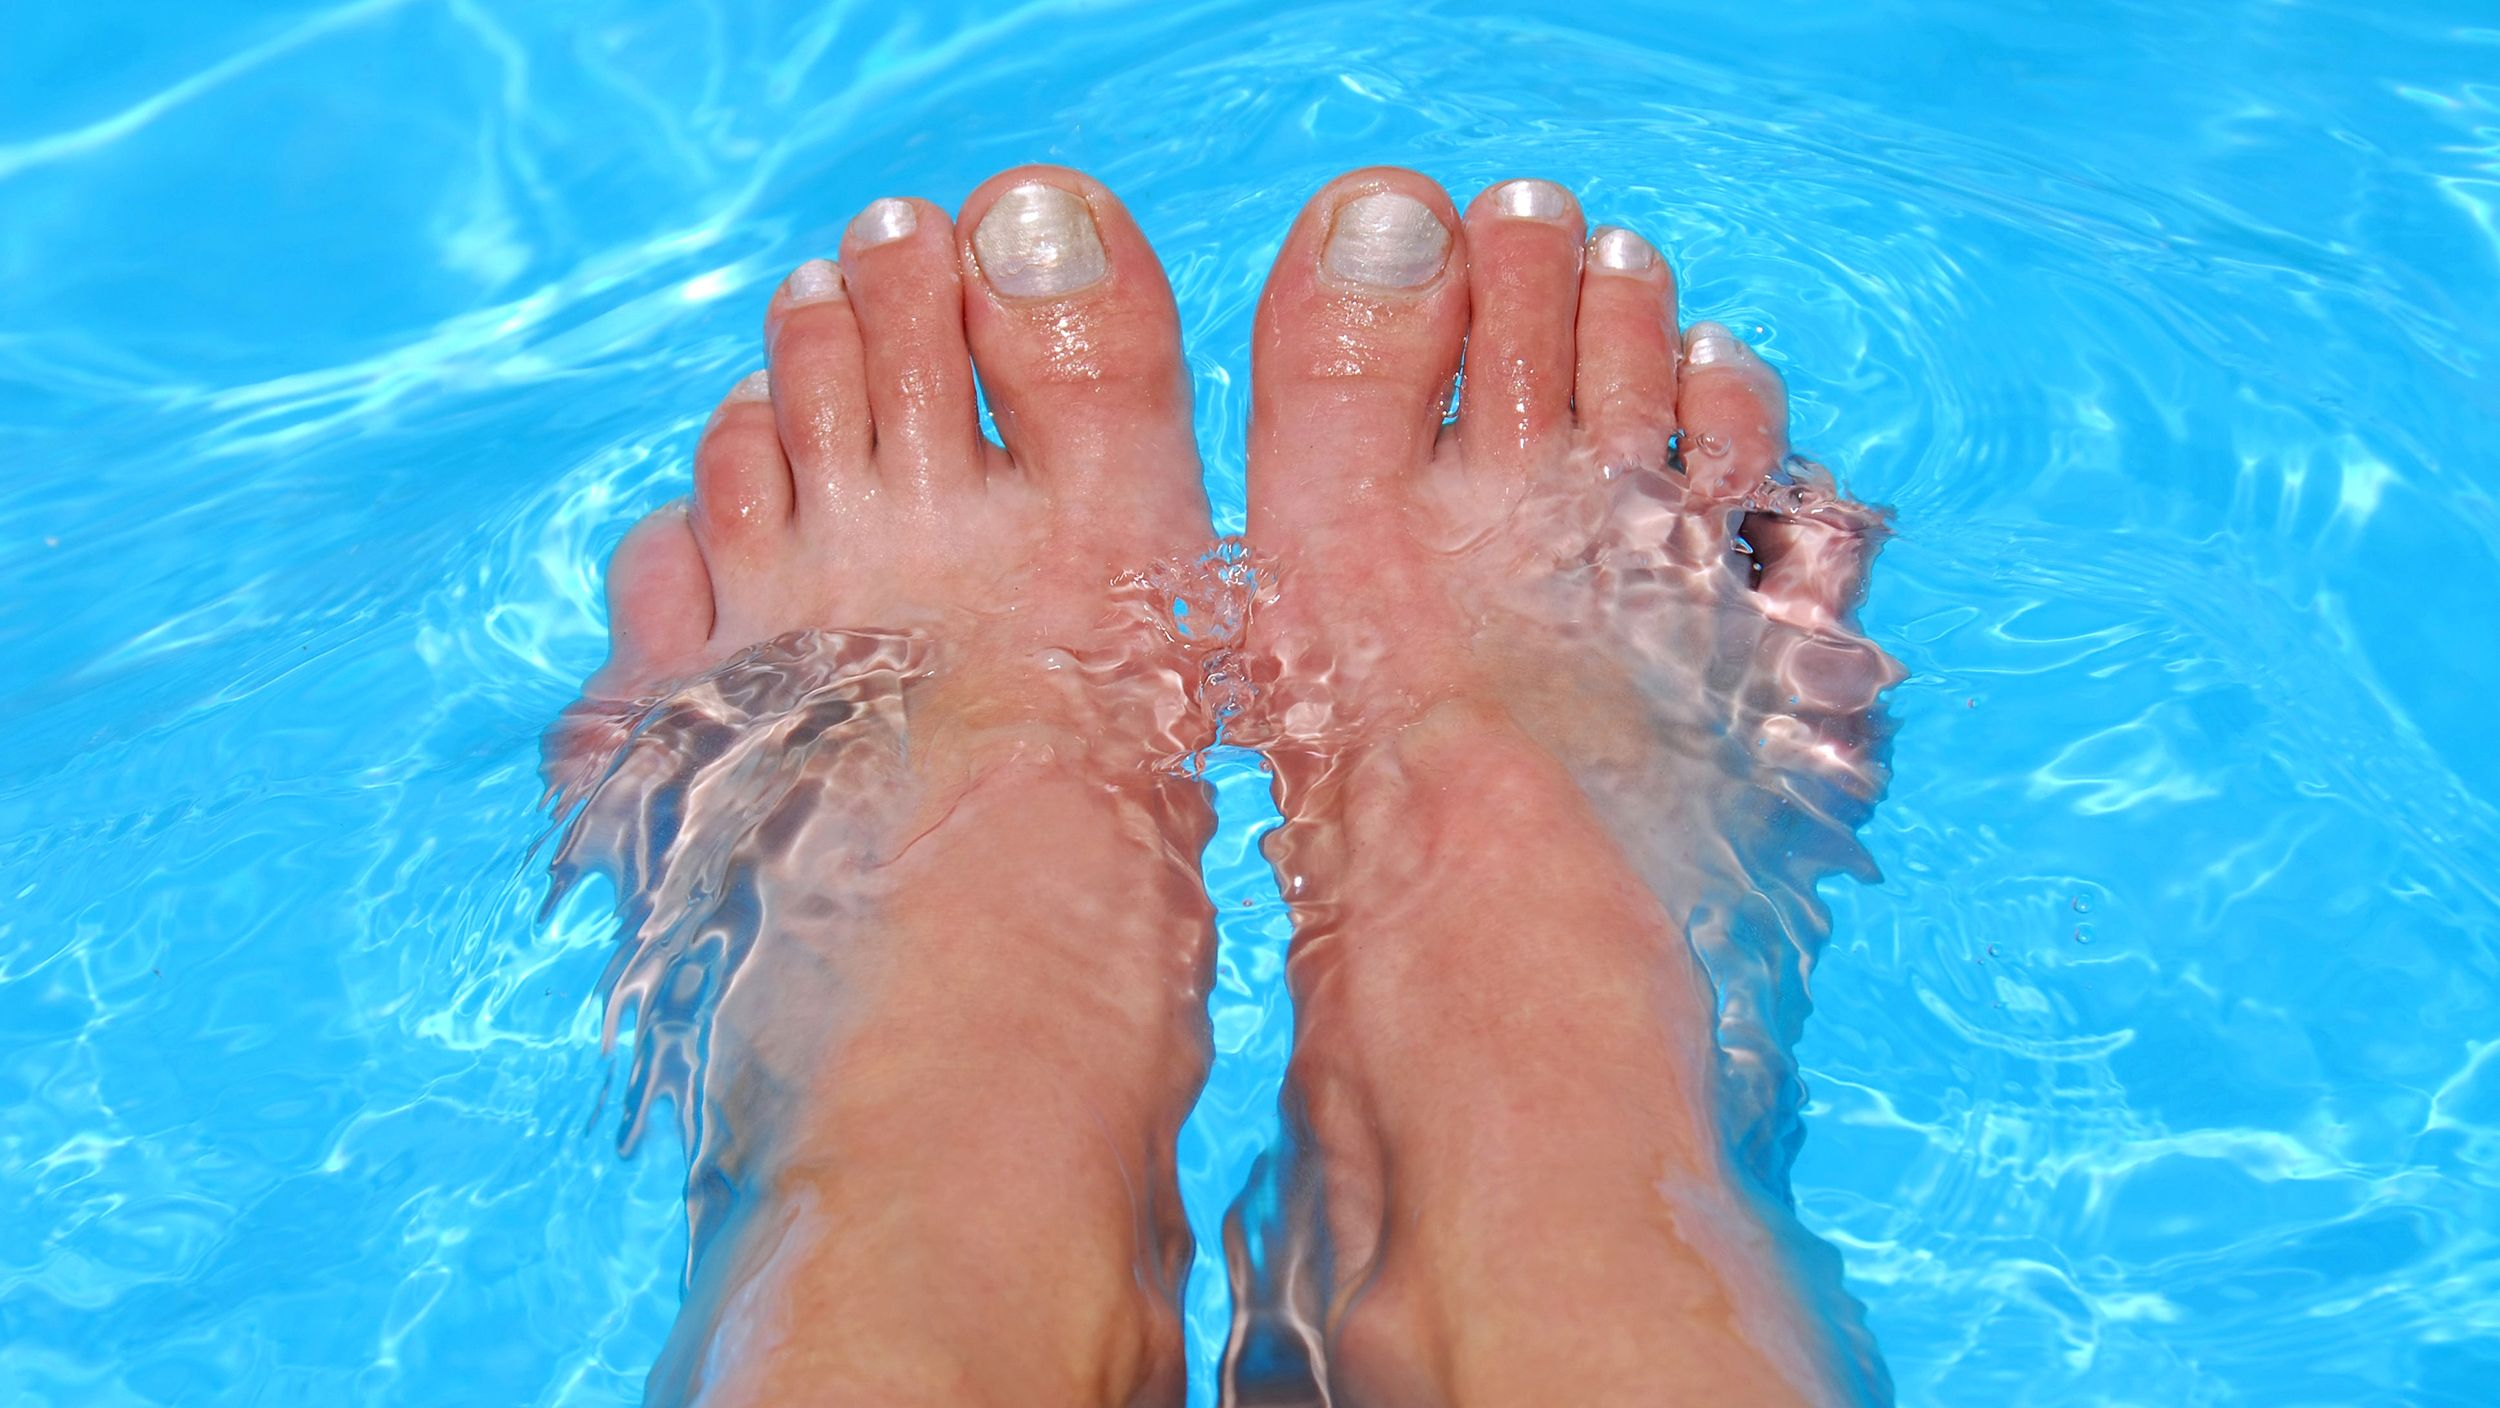 7 steps to chip-proofing your pedicure